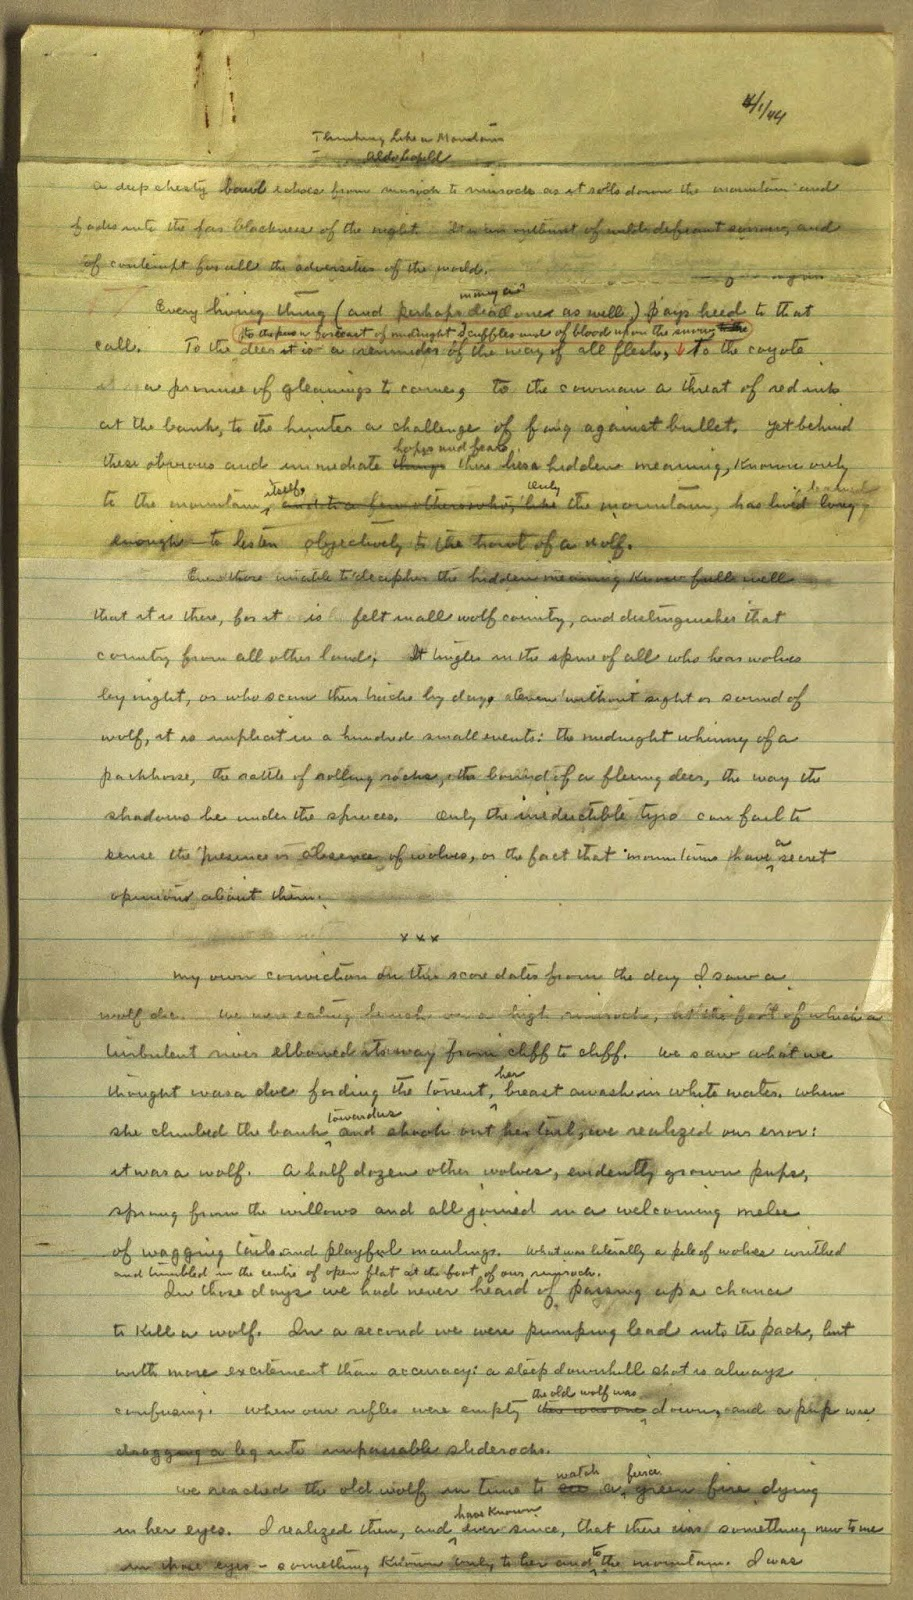 sample page from Aldo Leopold's manuscript draft of Sand County Almanac, Dept of Special Collections, Memorial Library, University of Wisconsin-Madison